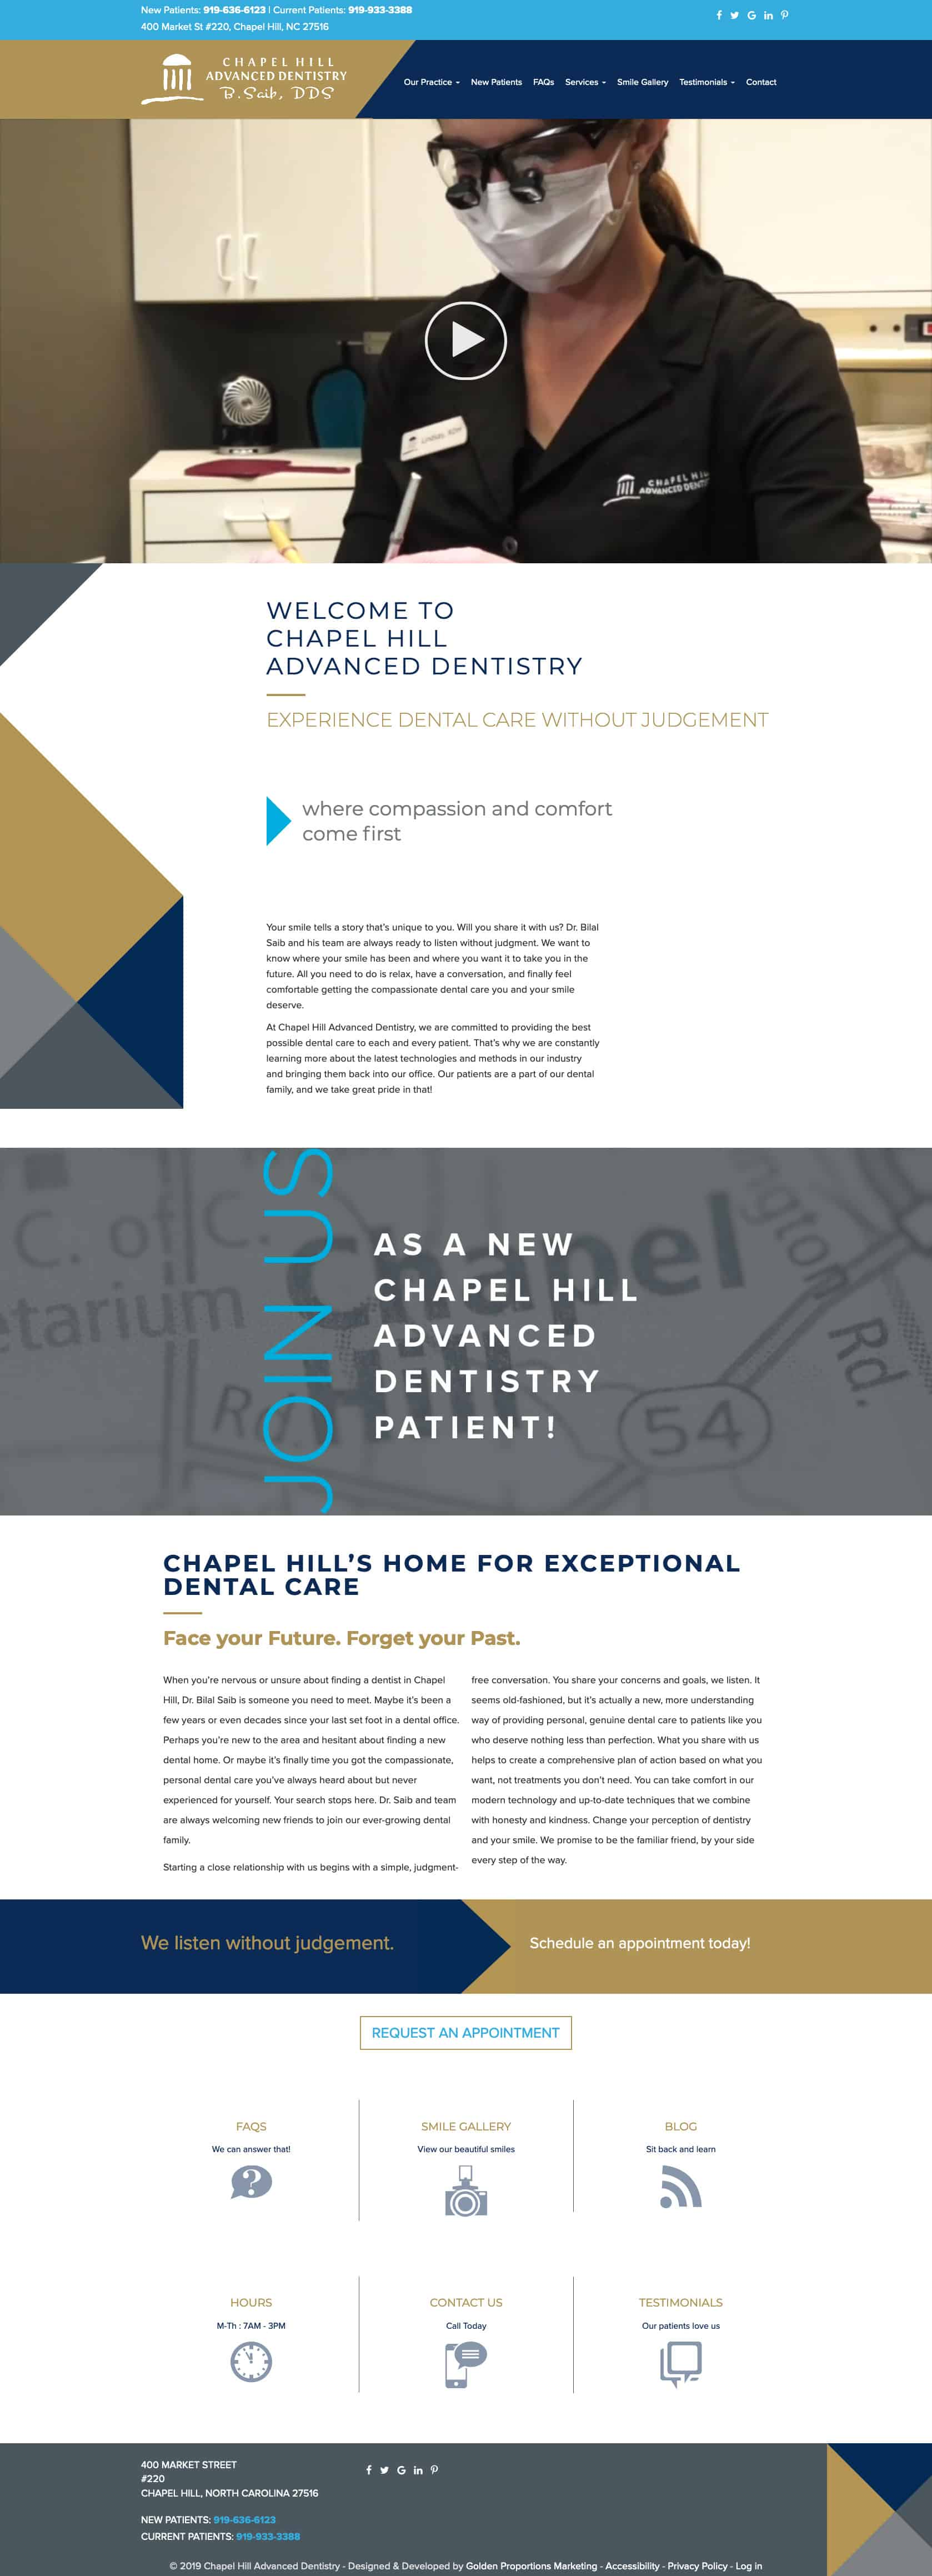 Chapel Hill Advanced Dentistry